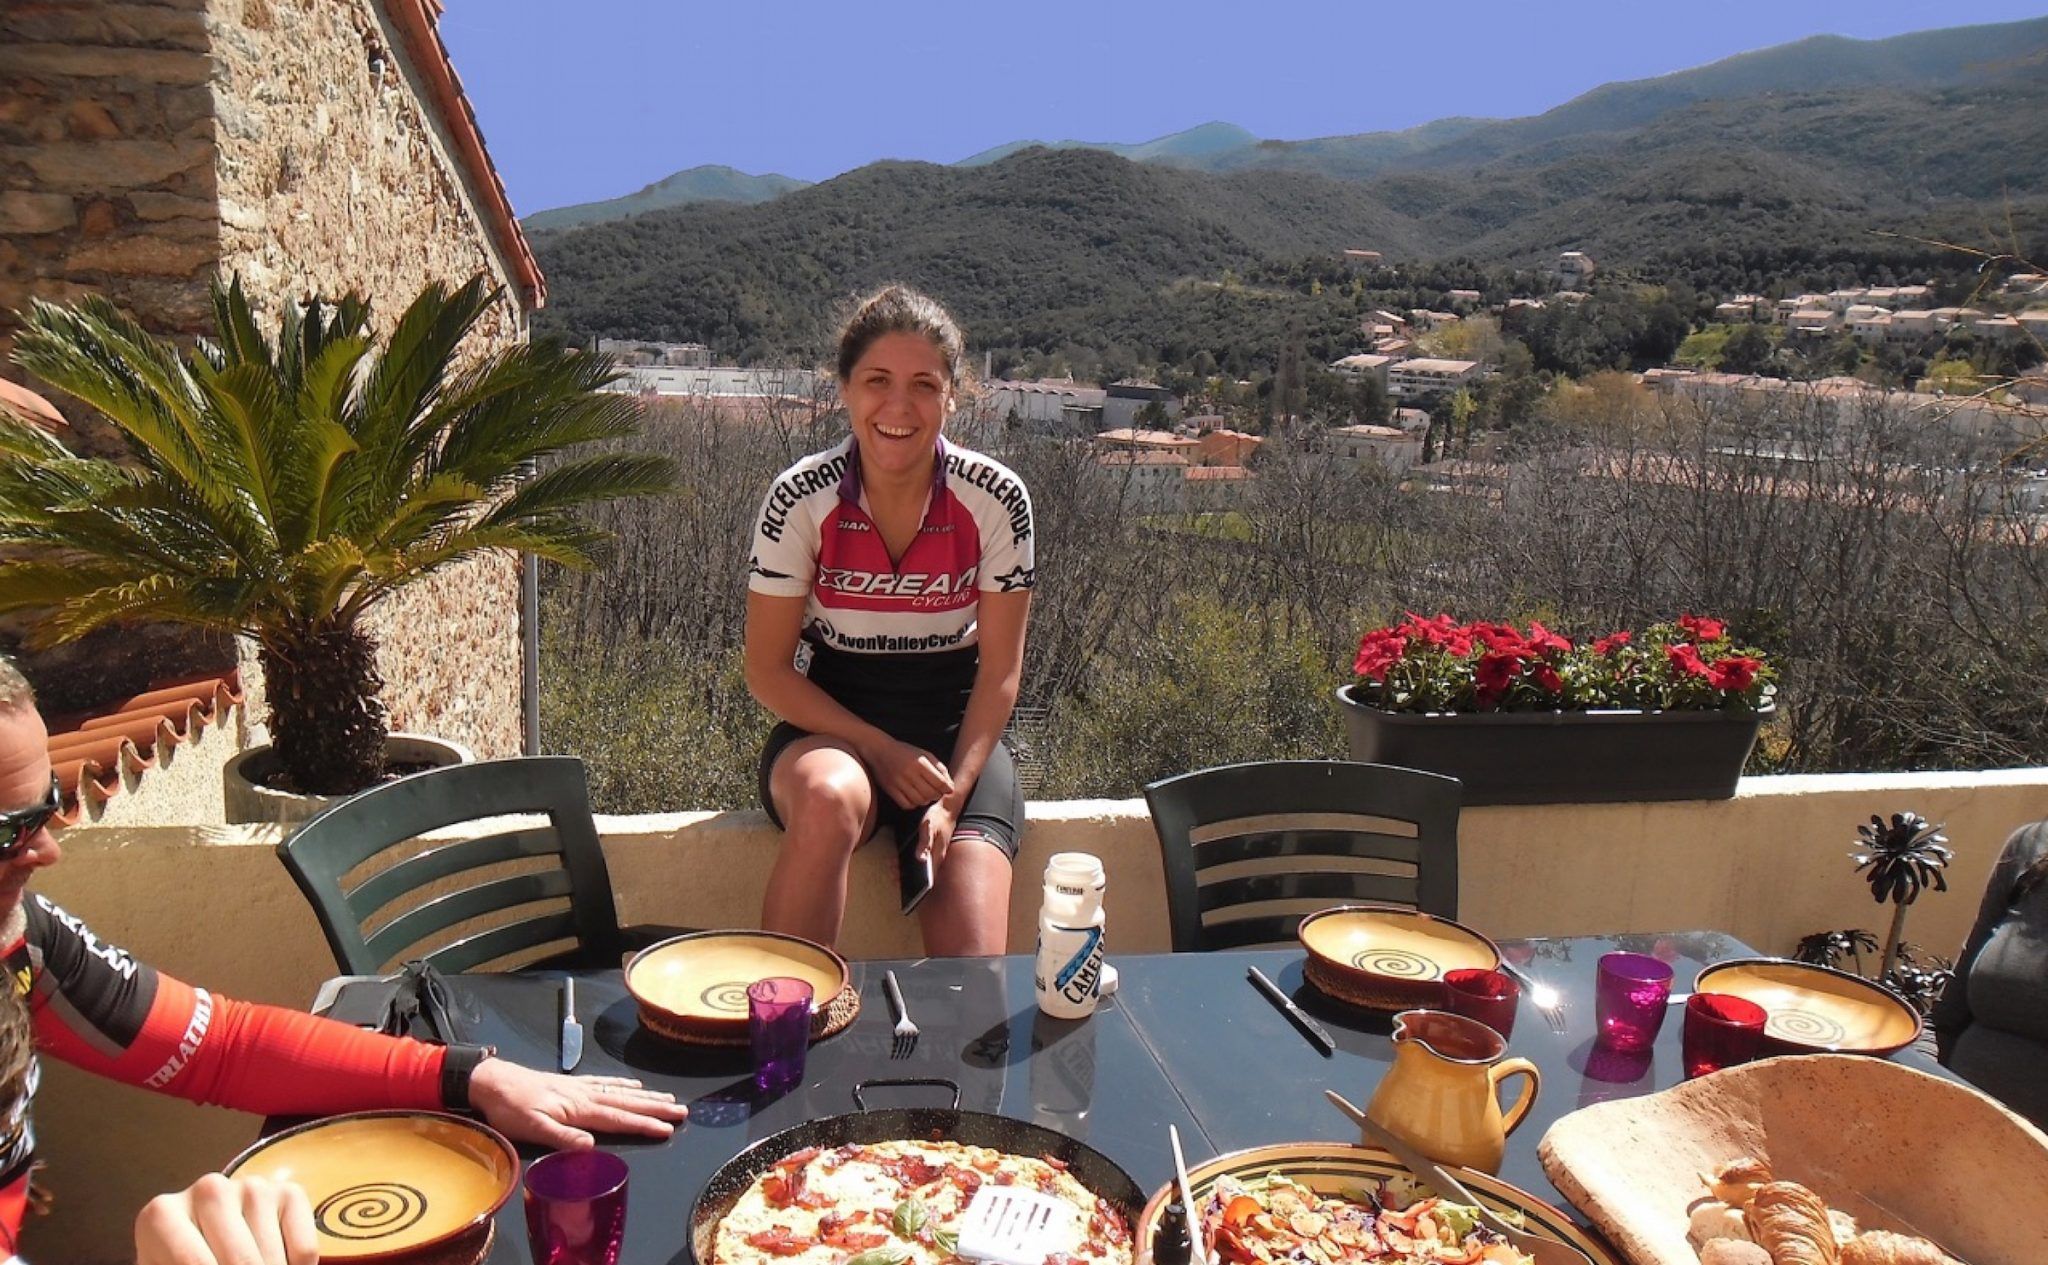 BEARMAN Accommodation Lunch-on-the-Terrace-Sancture-Sportifs